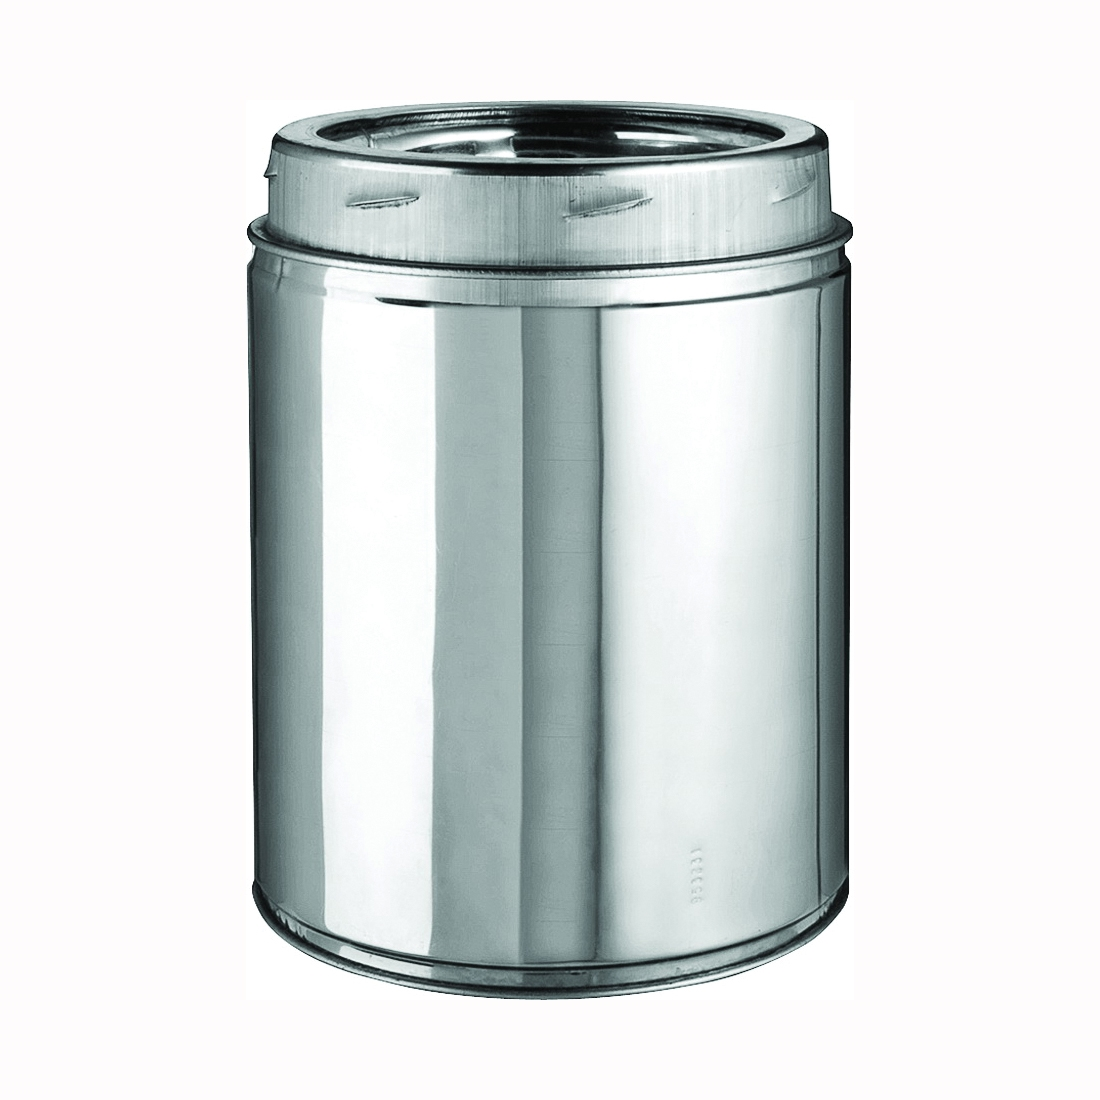 Picture of SELKIRK 208006 Chimney Pipe, 10 in OD, 6 in L, Stainless Steel